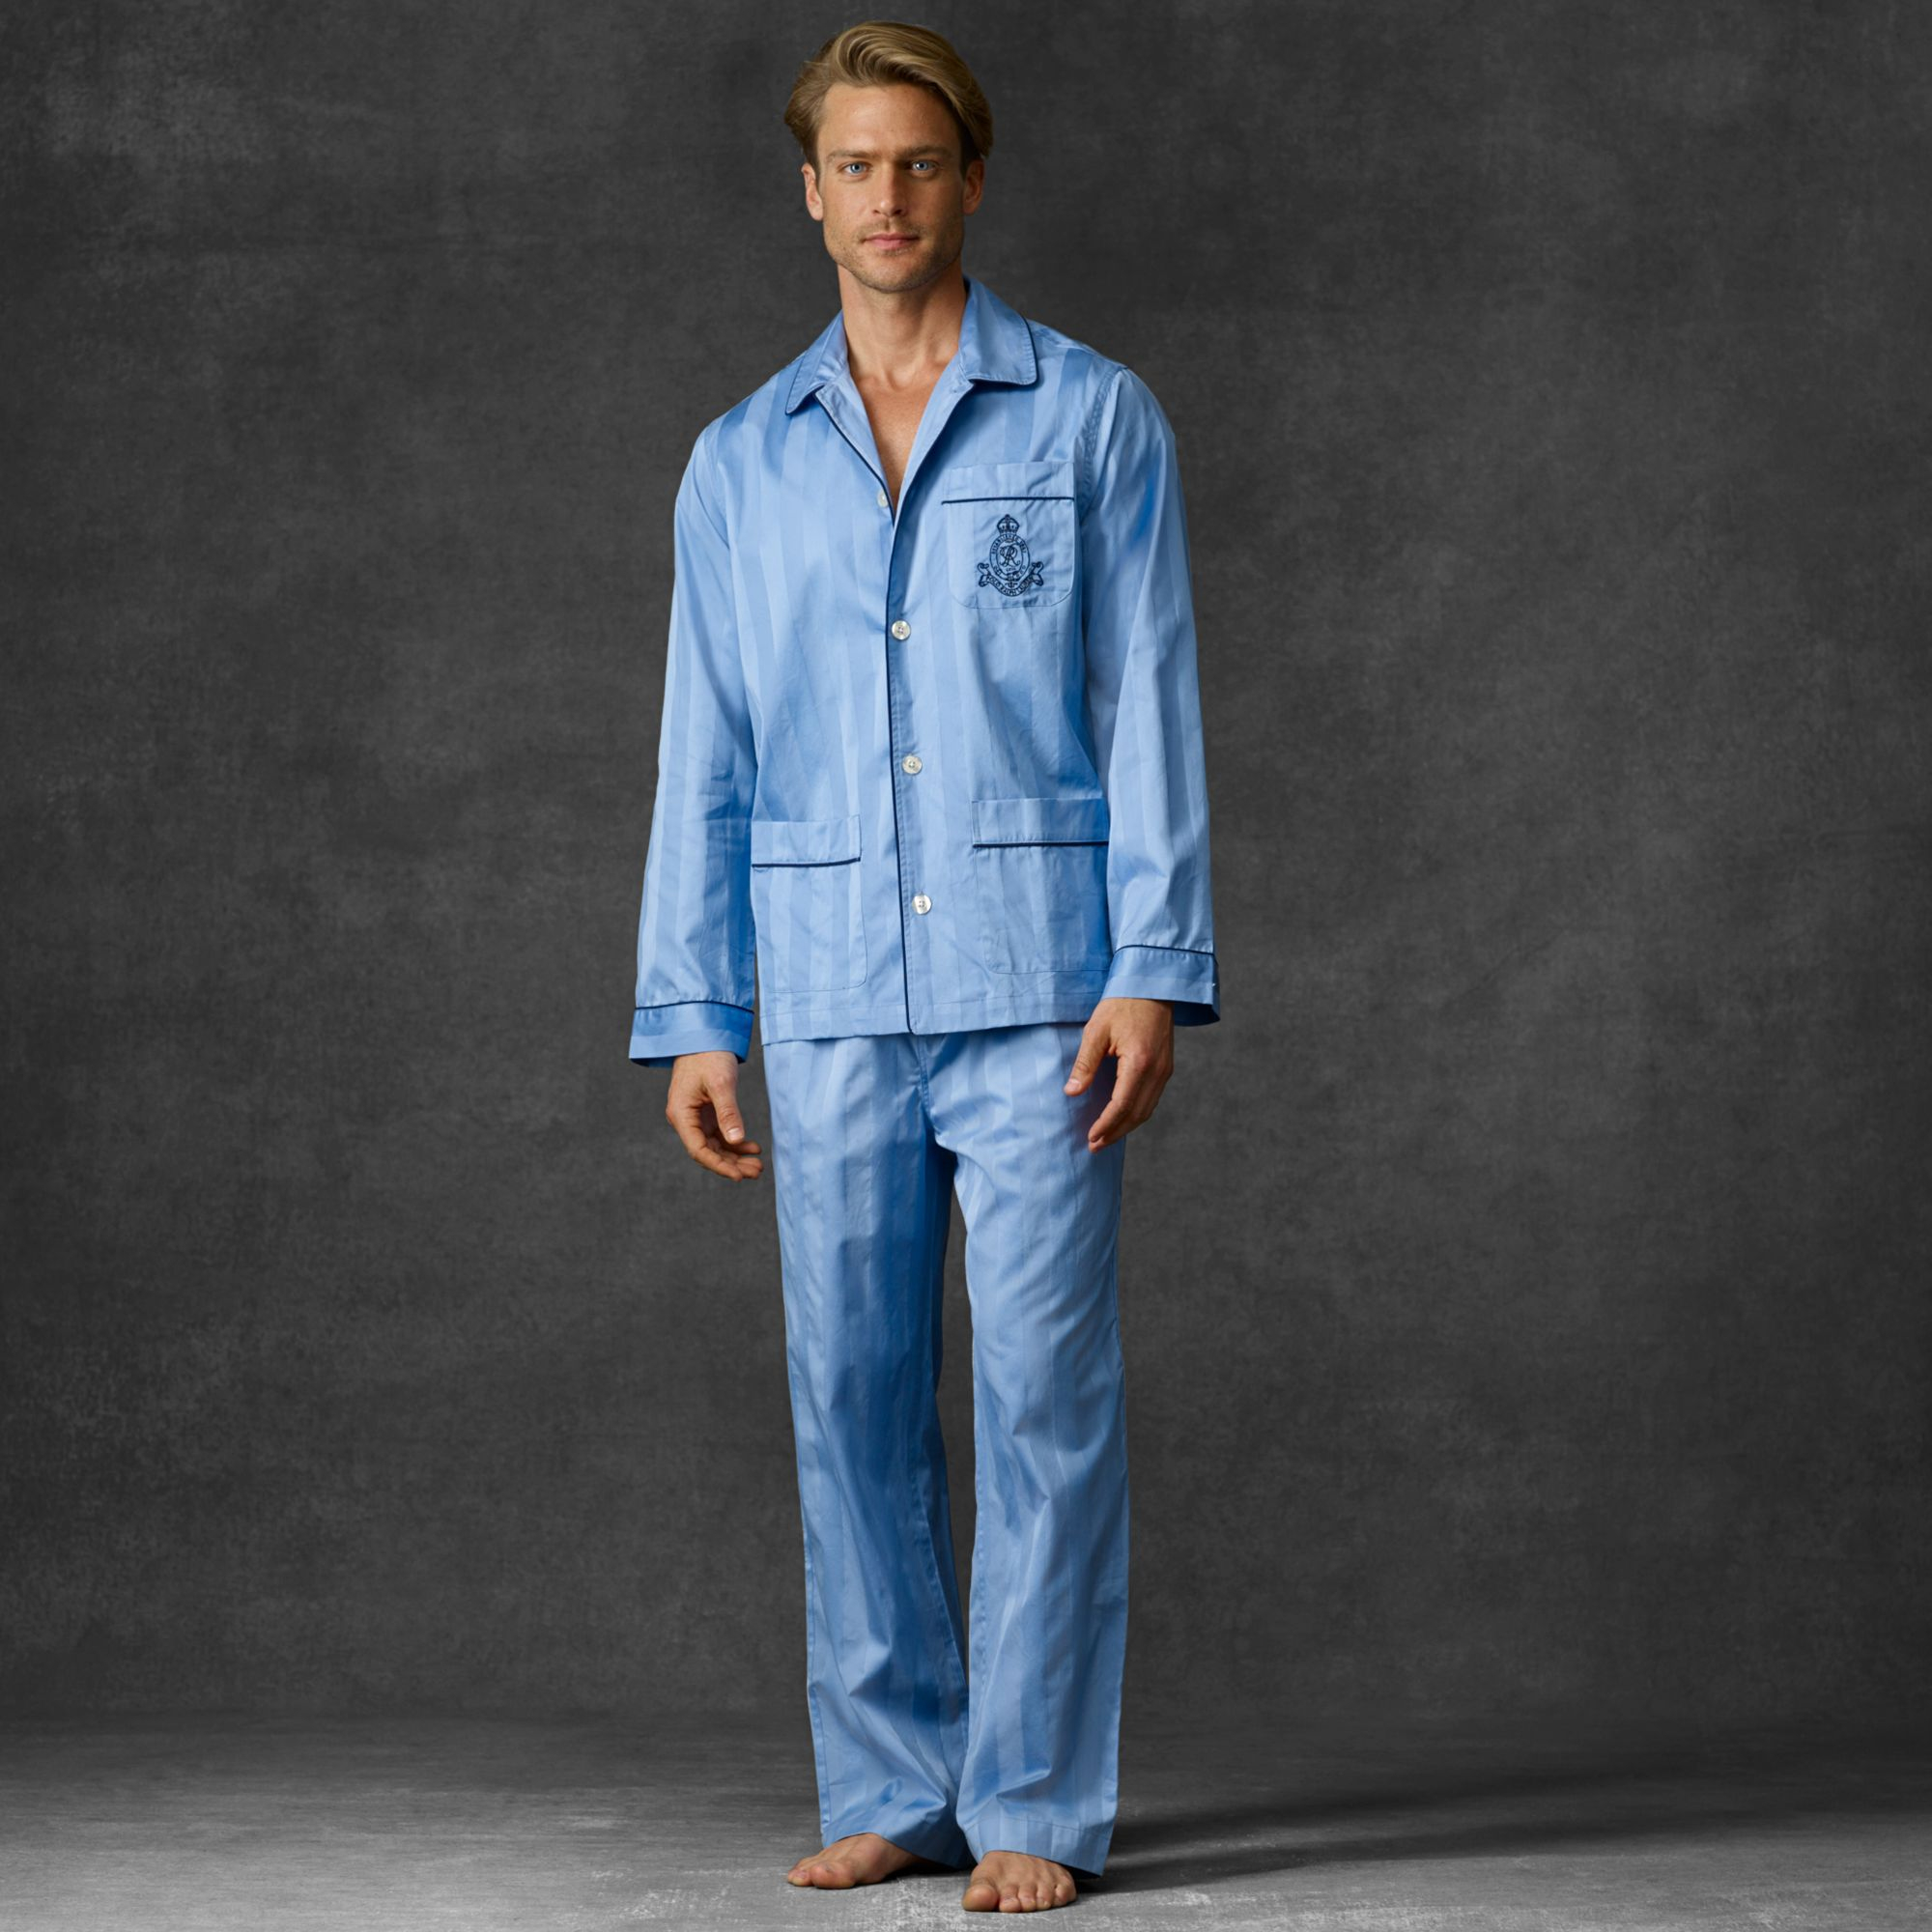 lyst polo ralph lauren cotton pajama set in blue for men. Black Bedroom Furniture Sets. Home Design Ideas